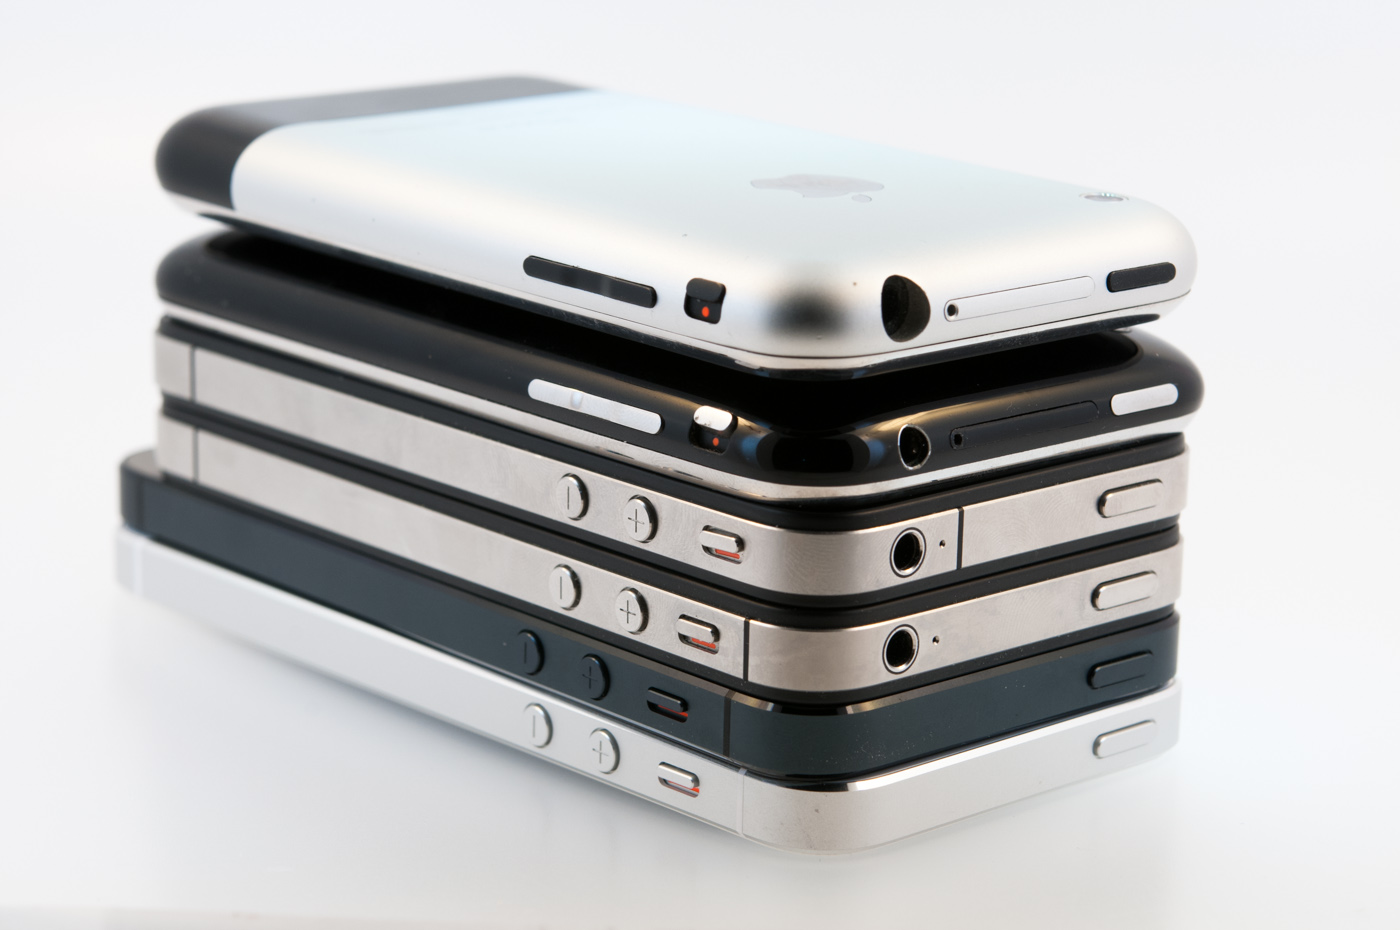 Iphone 1 2 3 4 5 Side By Six Generations Of Iphones Performance